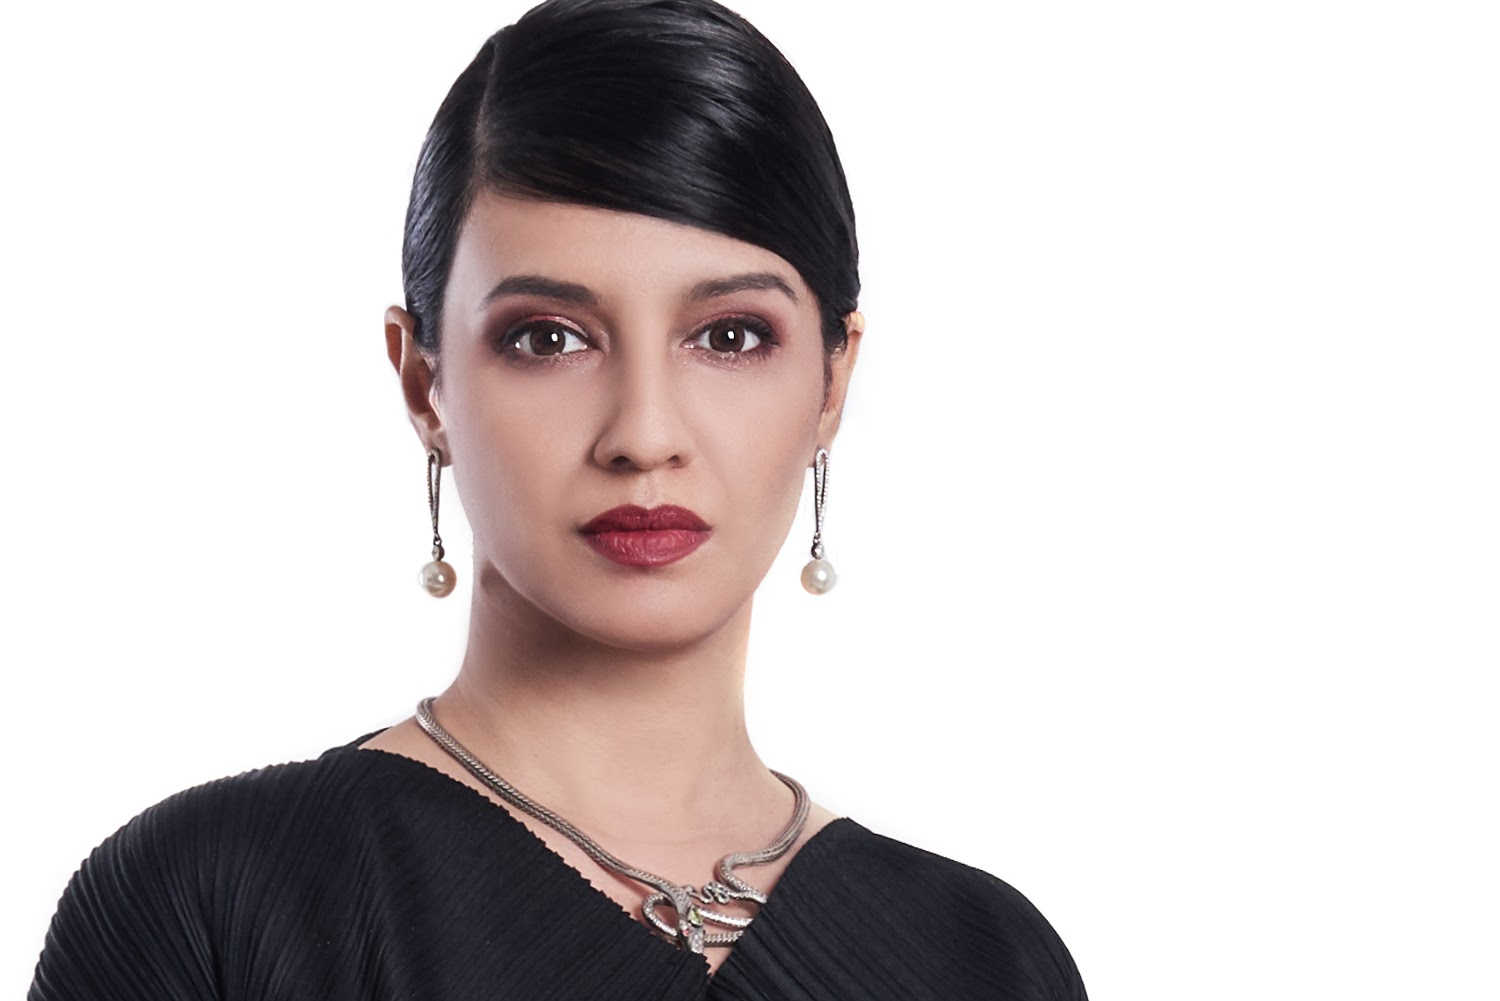 Exclusive Interview with Dr. Anjhula Mya Singh Bais